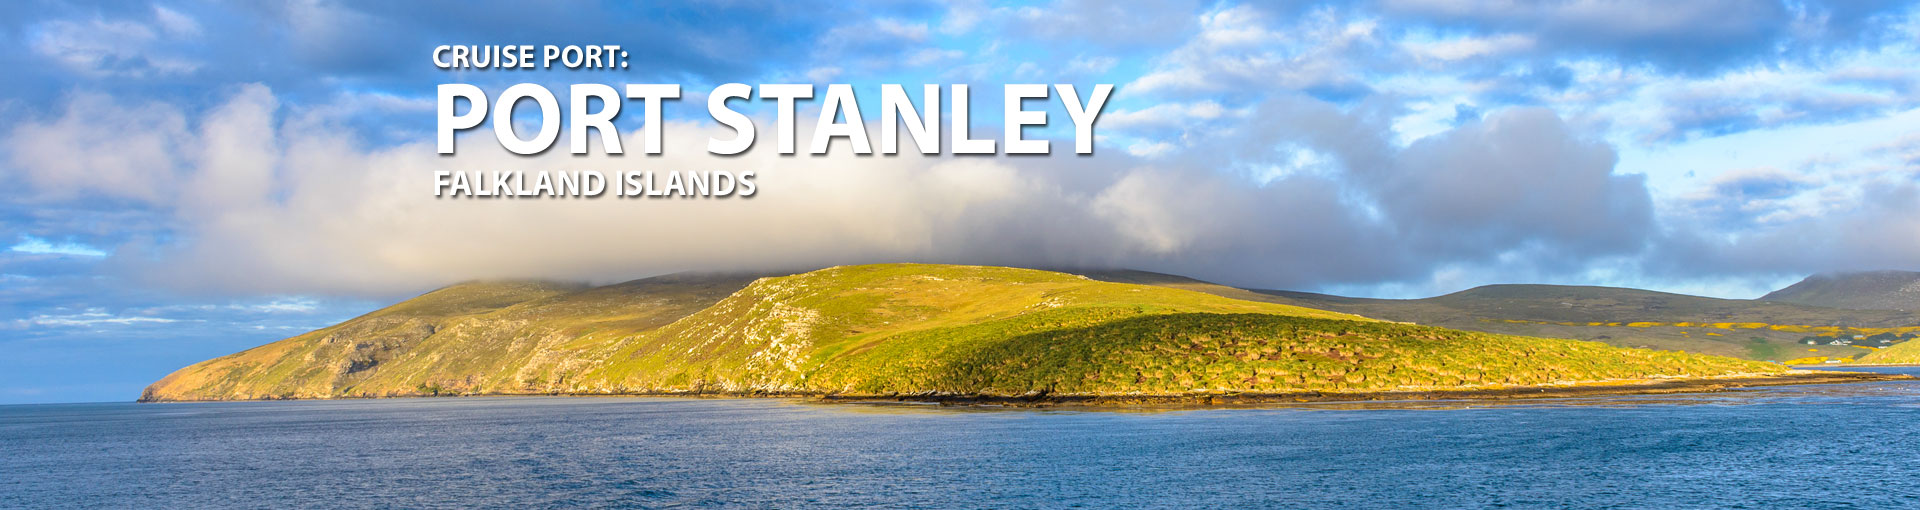 Cruises to Port Stanley, Falkland Islands